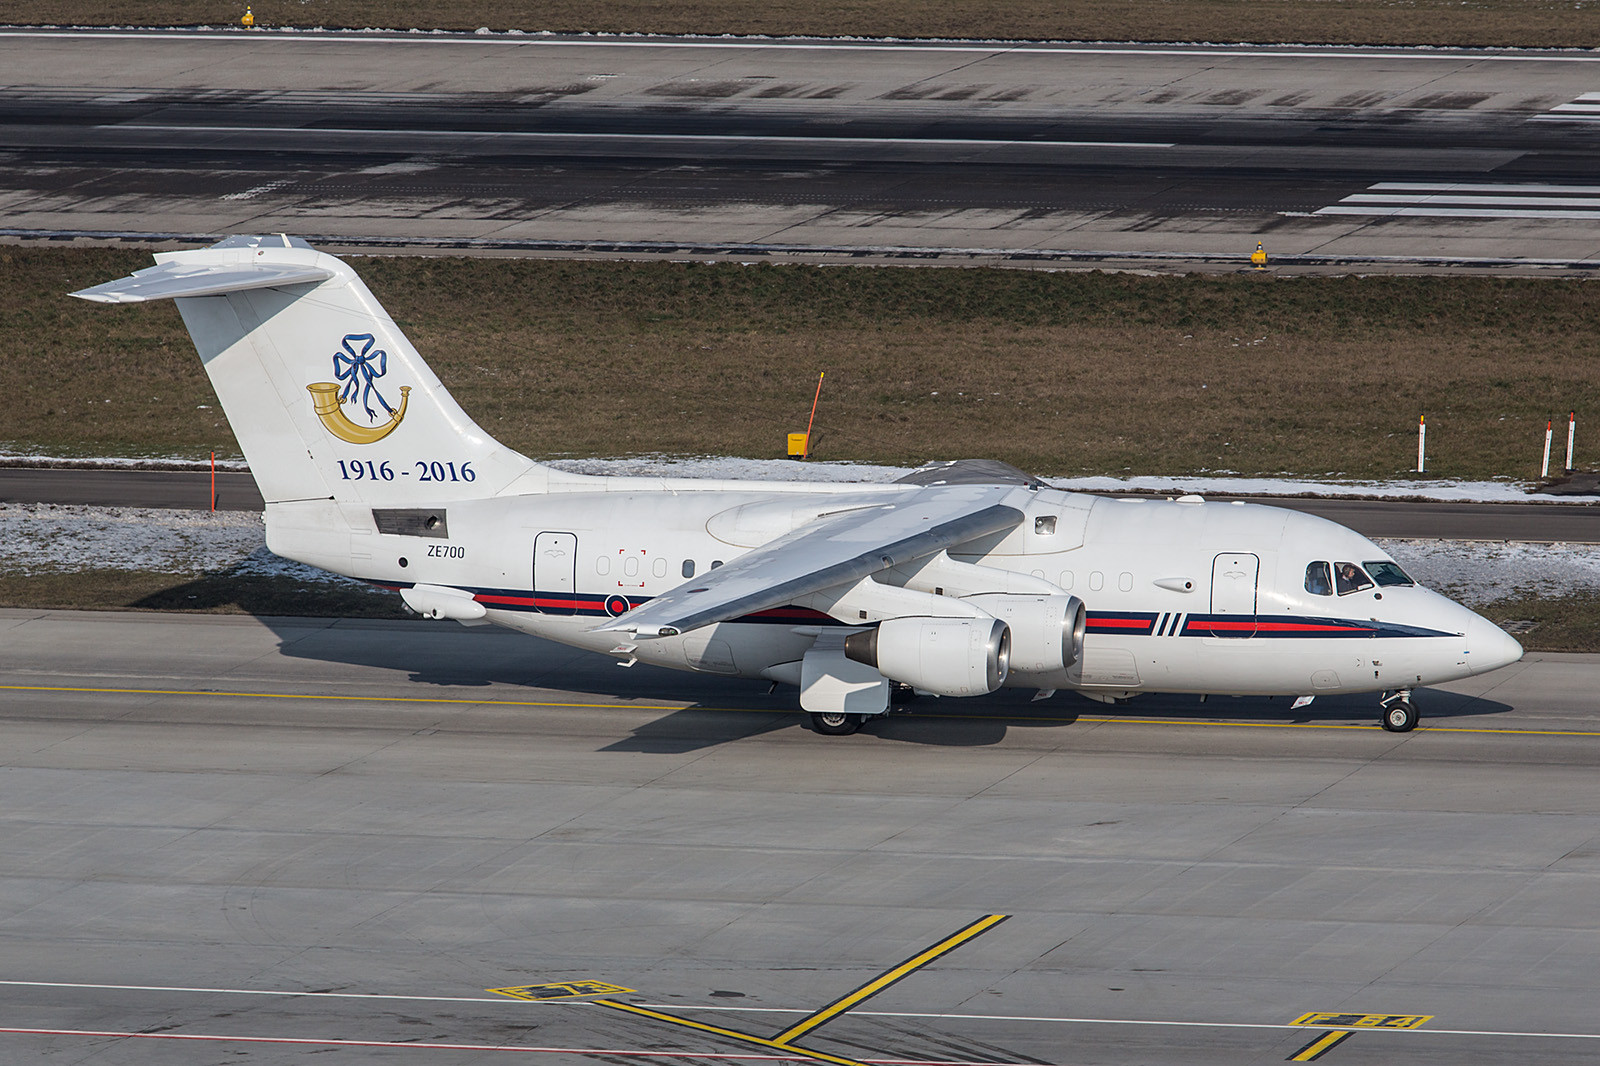 ZE700, BAE 146 der Royal Air Force.